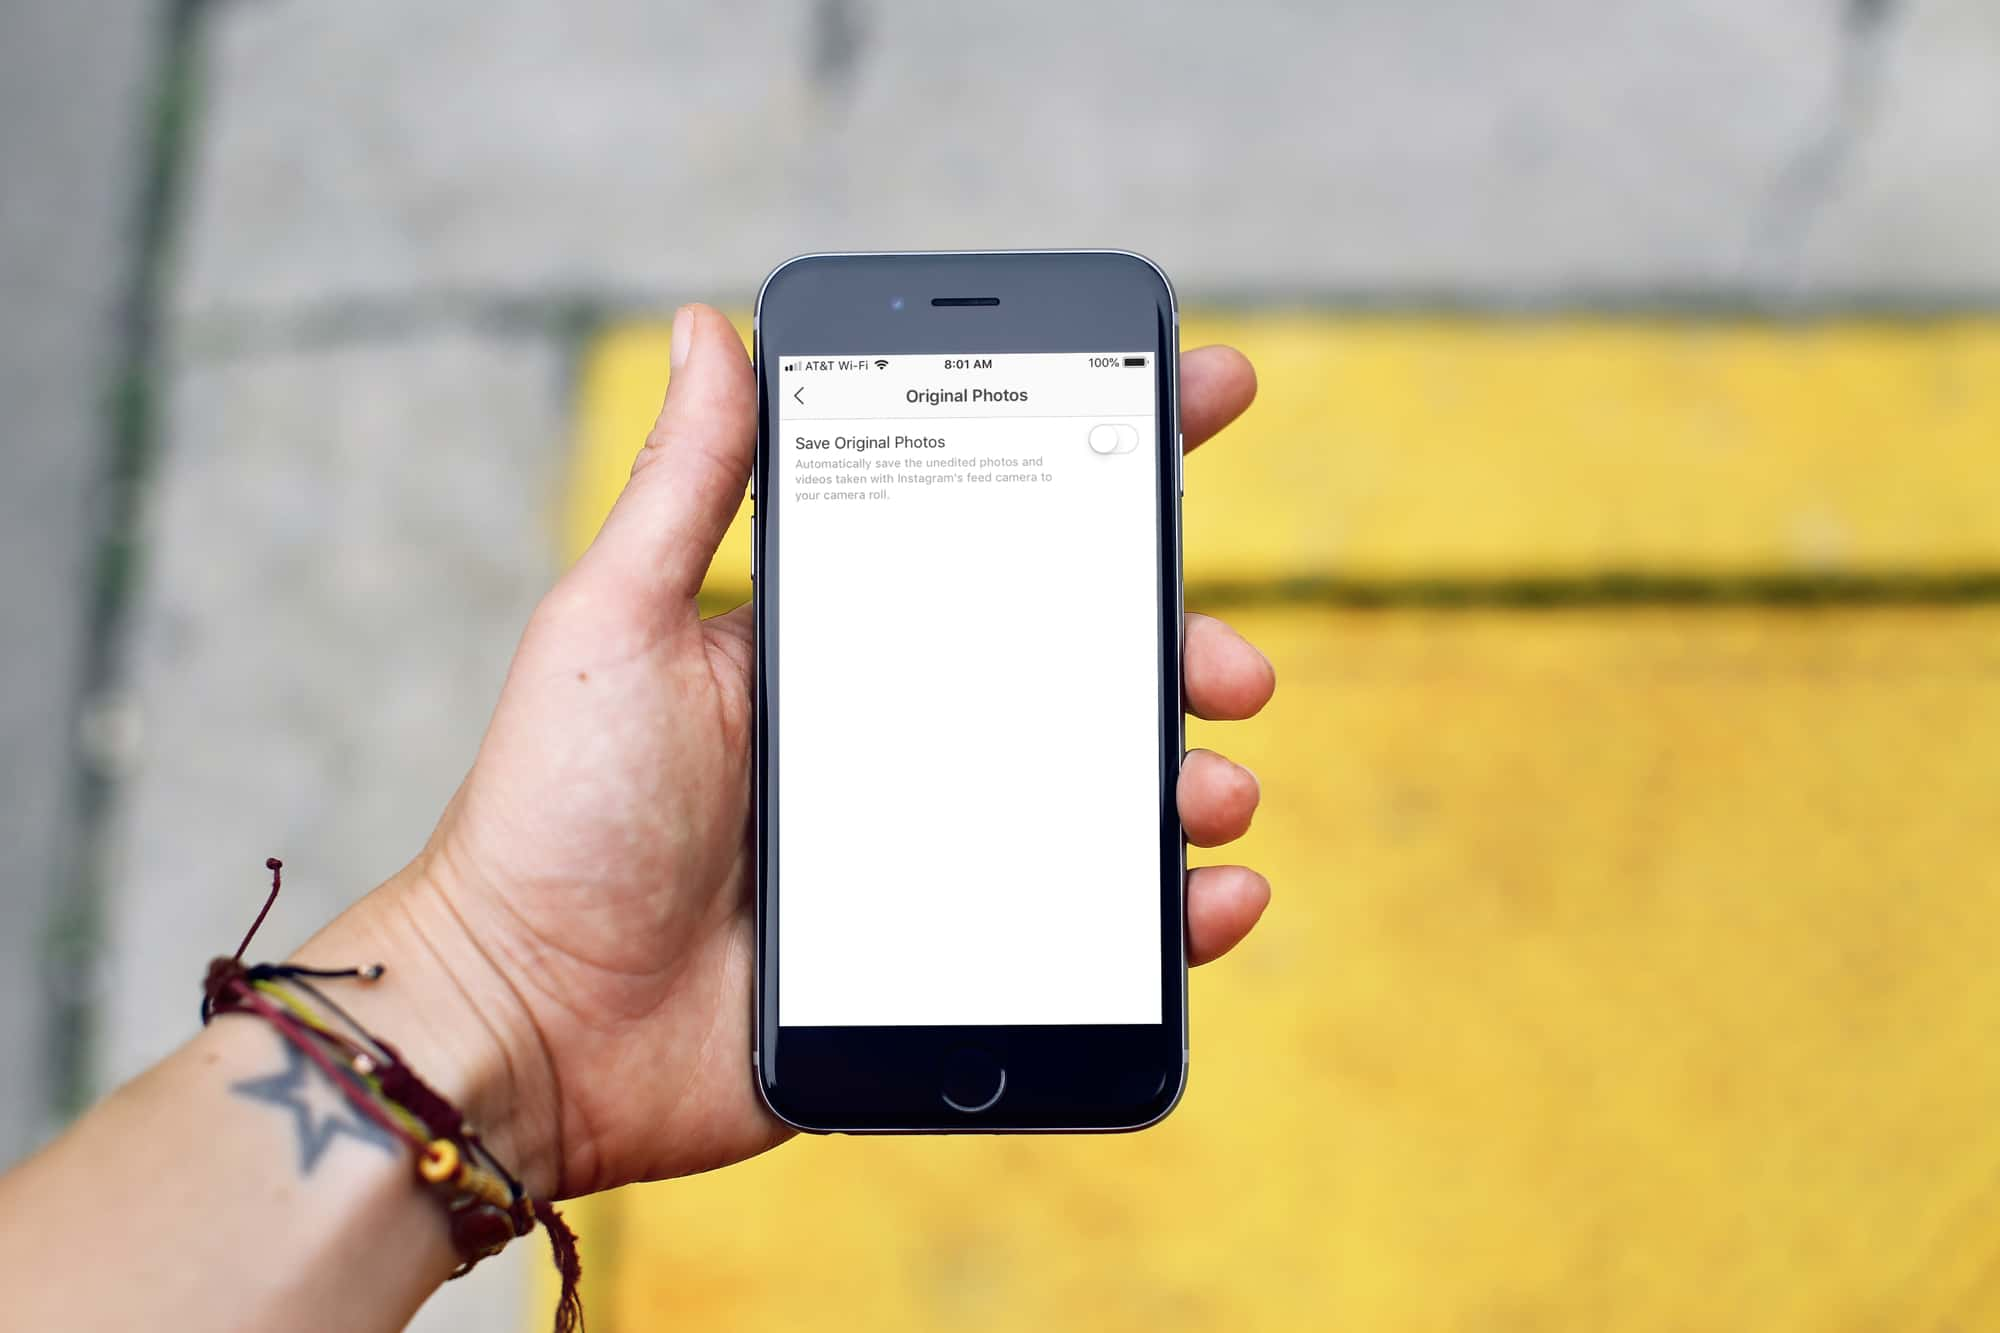 How to stop iPhone from saving Instagram photos to the